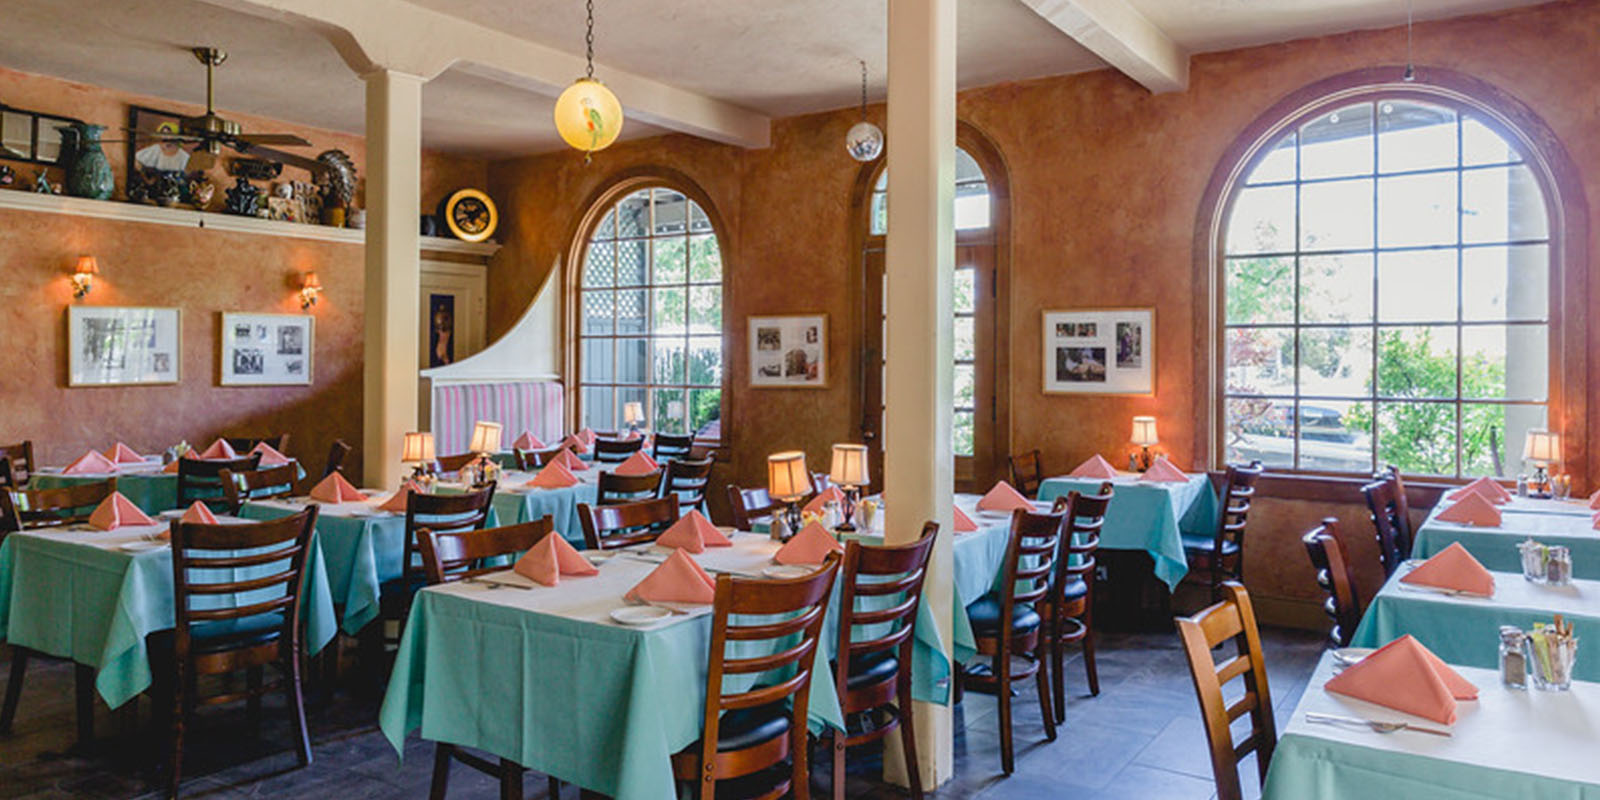 MINGLE WITH FRIENDS, OR MEET NEW ONES AT OUR SAN RAFAEL, CALIFORNIA HOTEL